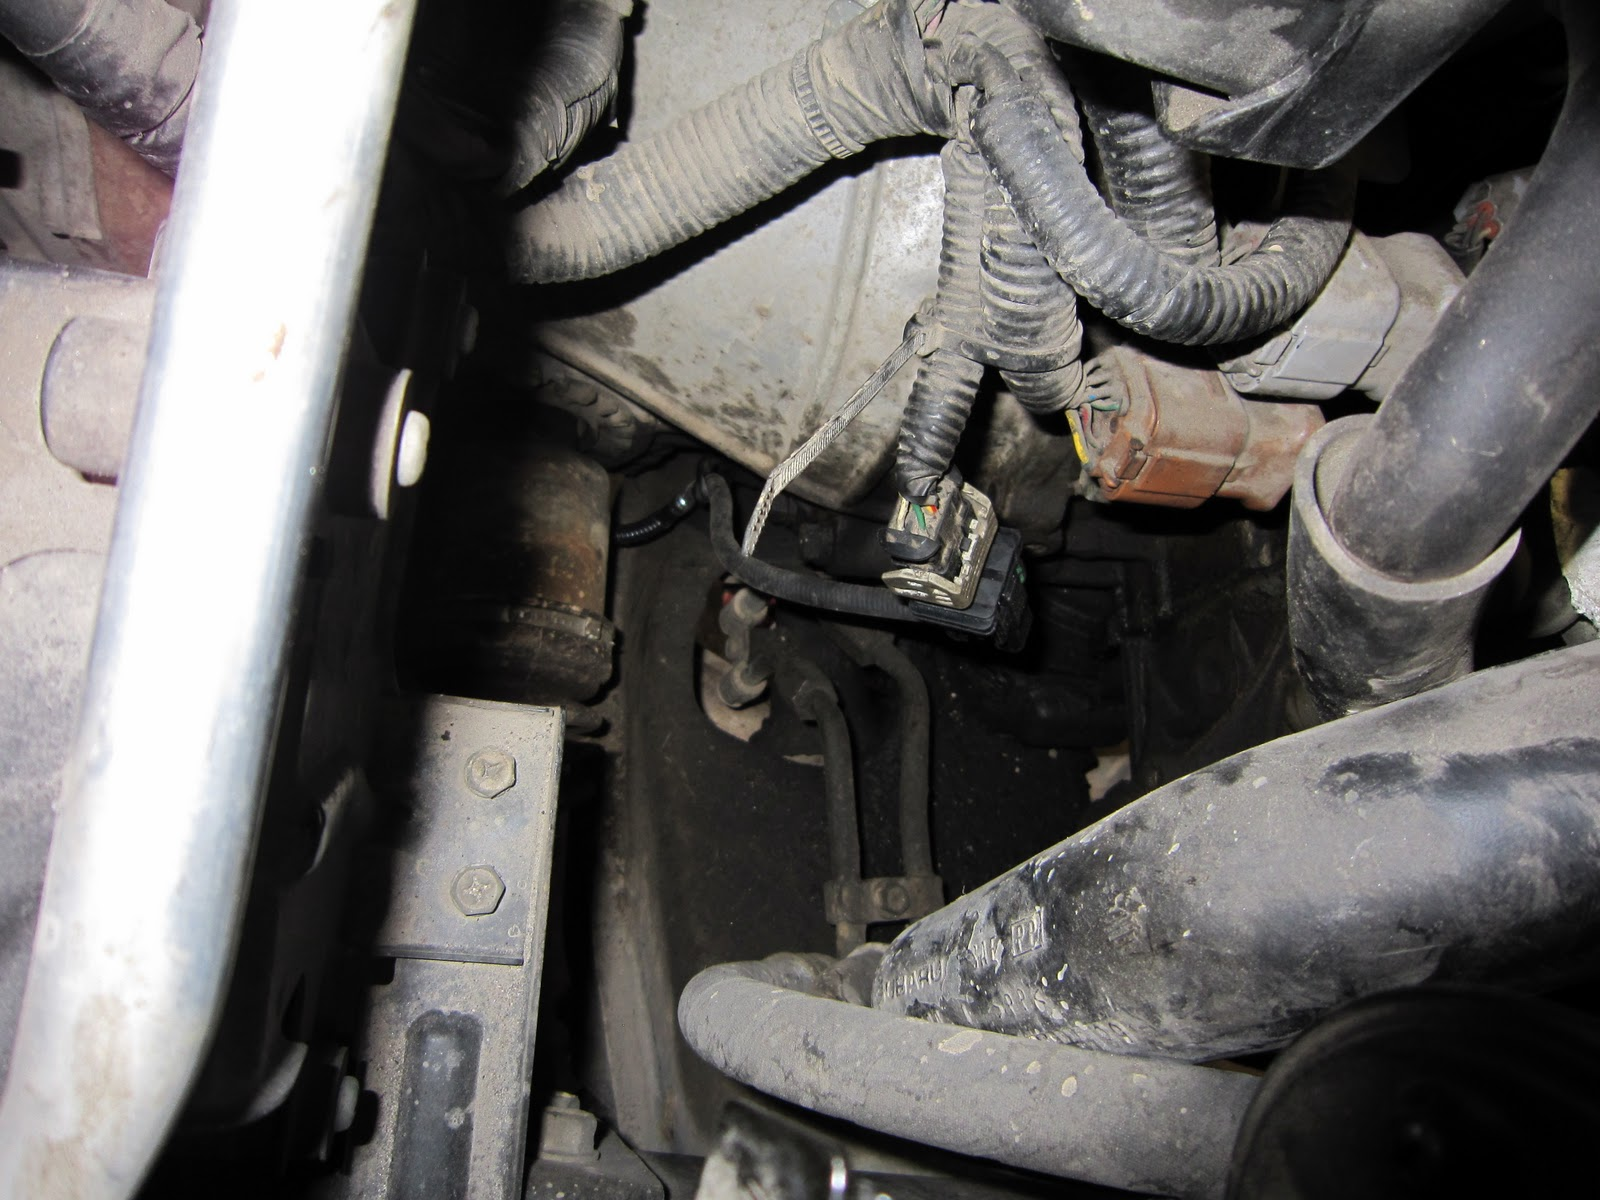 Bill In Tahoe Subaru Outback O2 Sensor Po130 2000 Map Location Now To Remove The First Locate Connector Plug On Passenger Side Of Engine It Has A Light Grey Colored Safety Clip